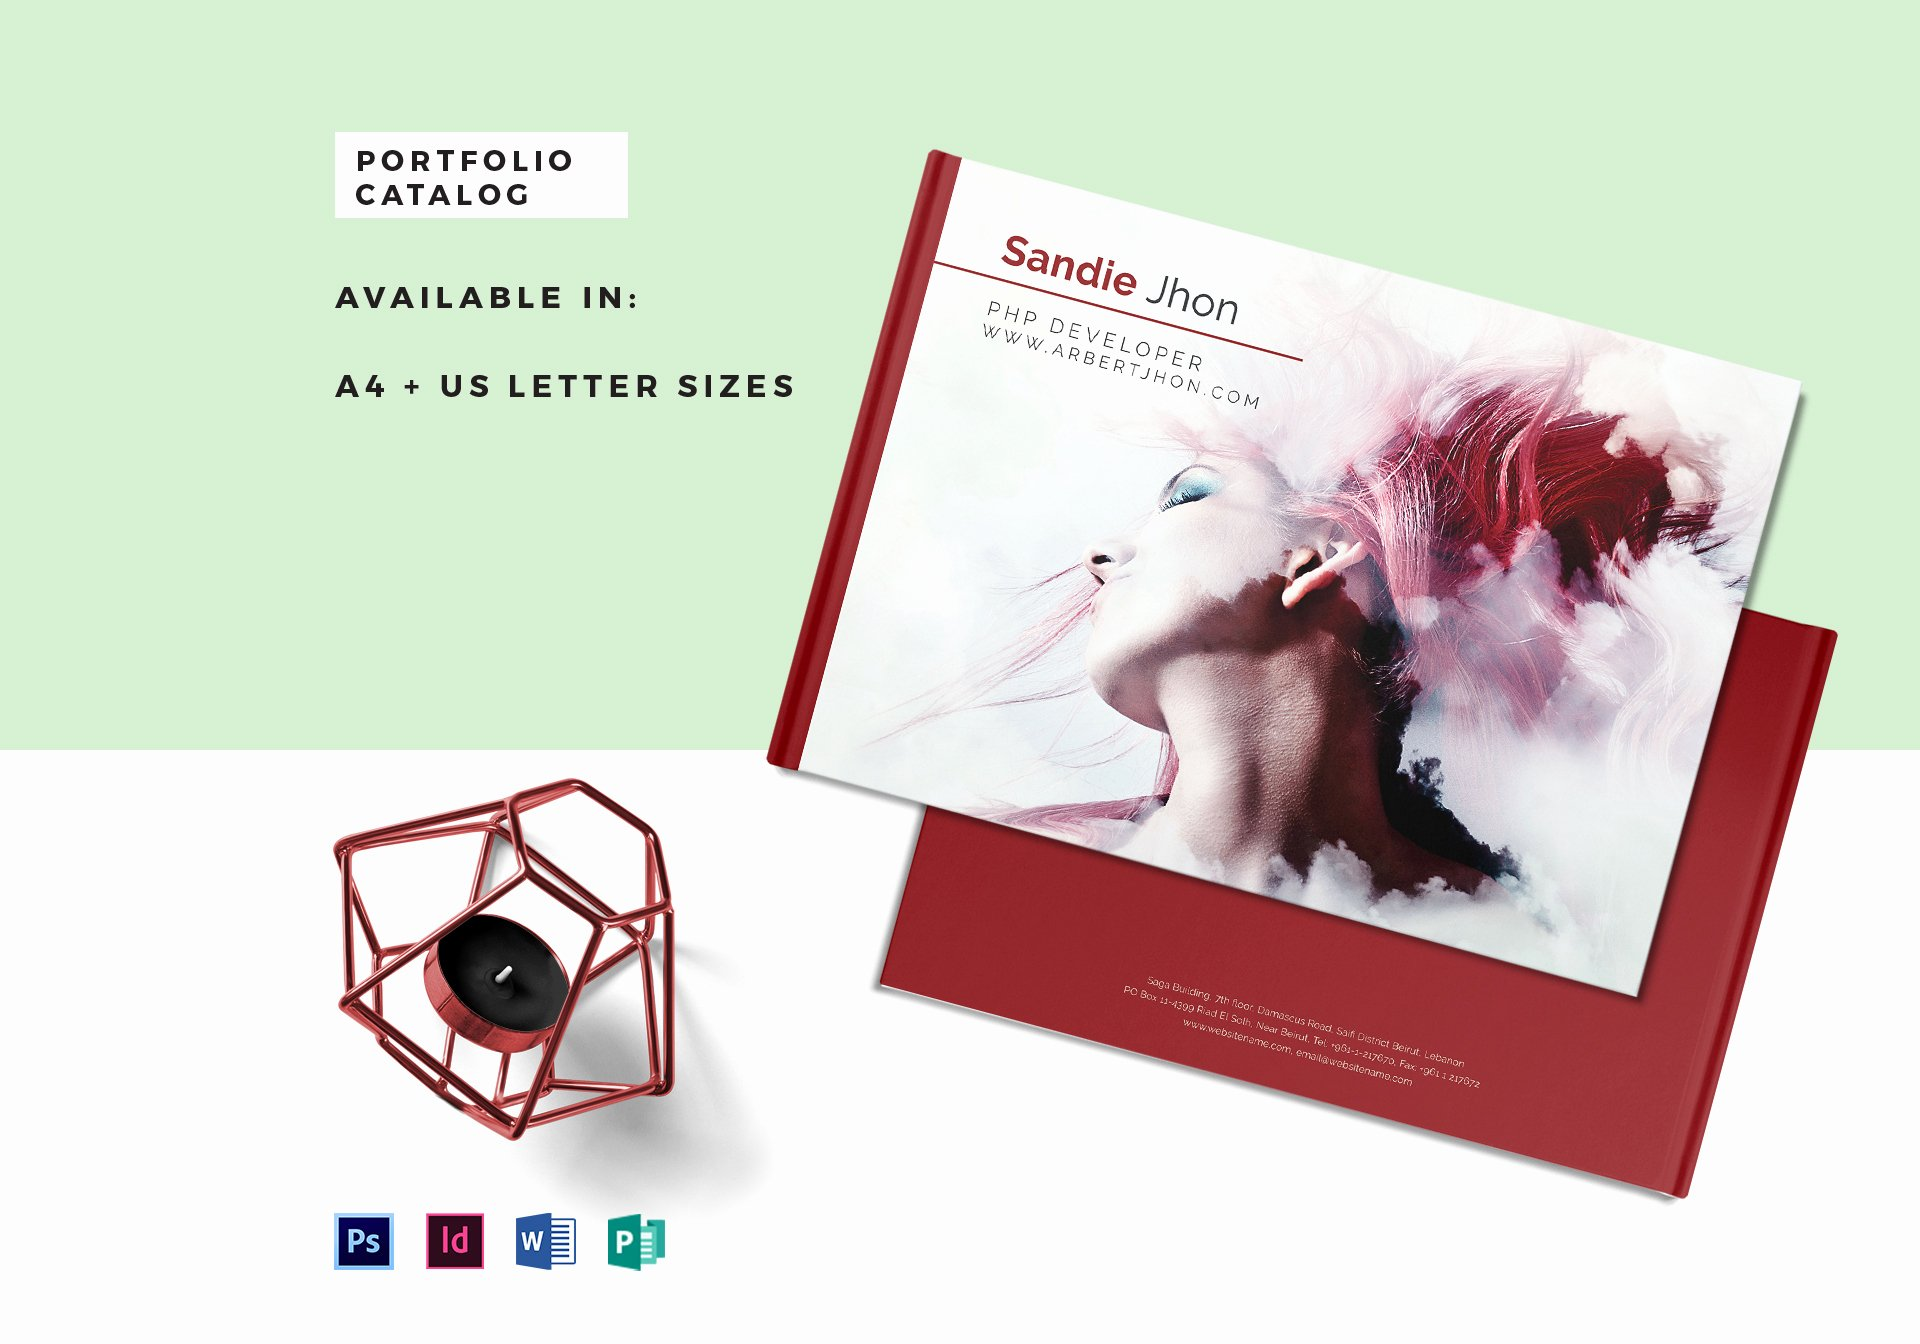 Indesign Portfolio Template Free Luxury Editable Portfolio Catalog Template In Psd Word